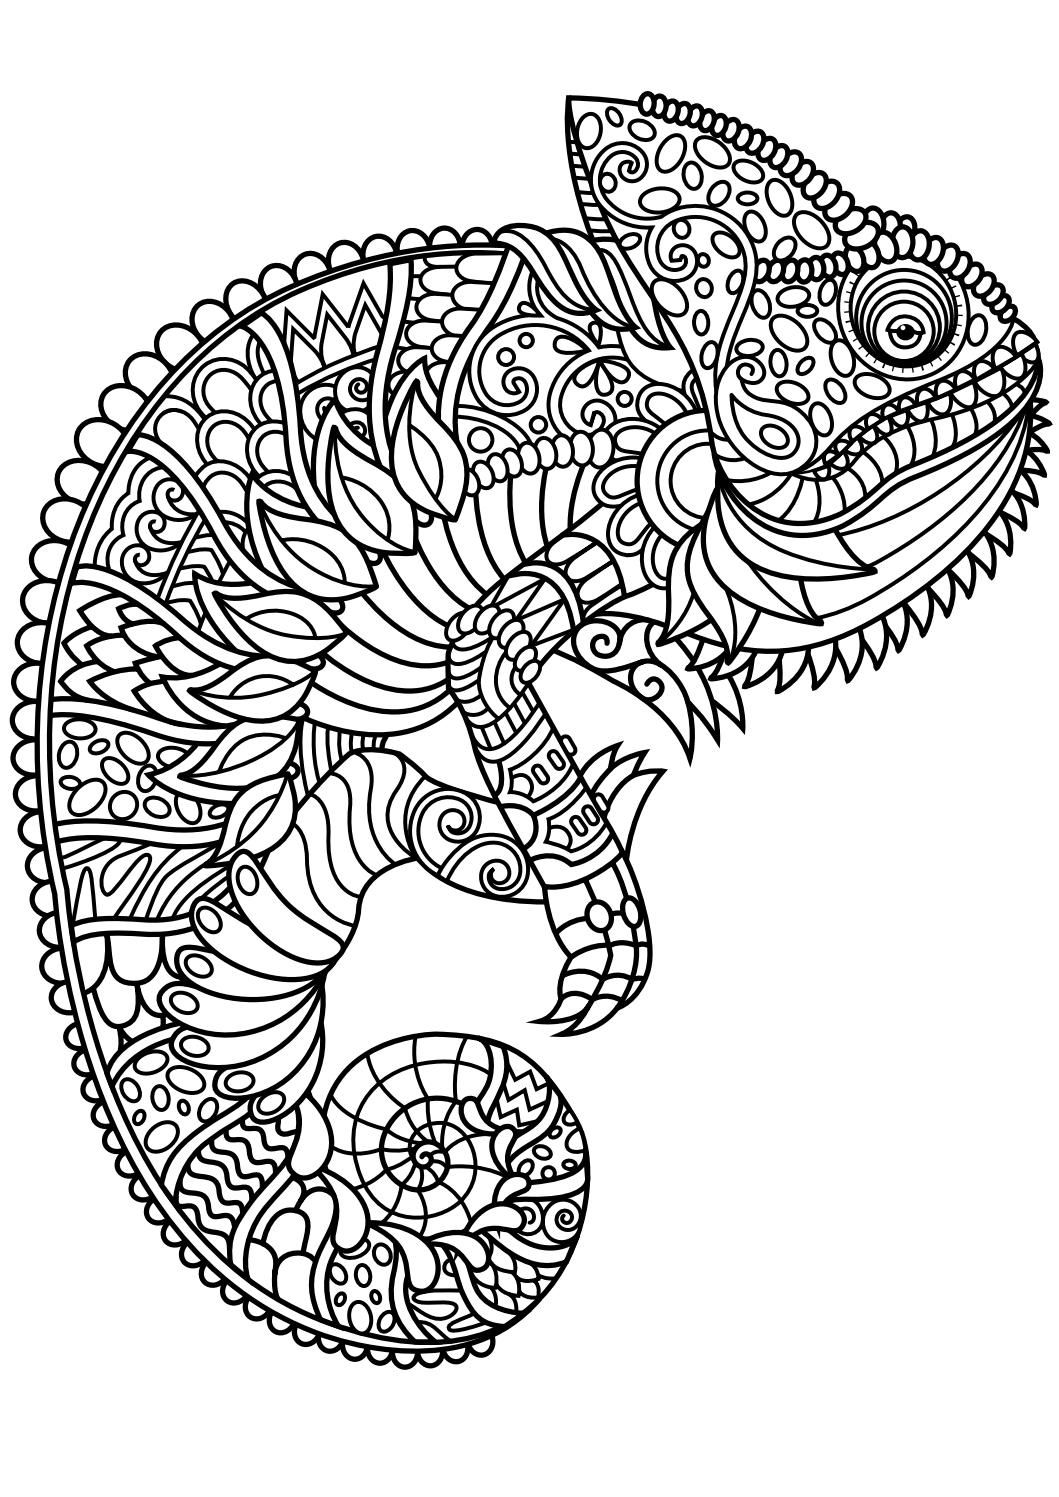 1059x1497 Animal Coloring Pages Pdf Mandalas, Colorear Y Dibujo